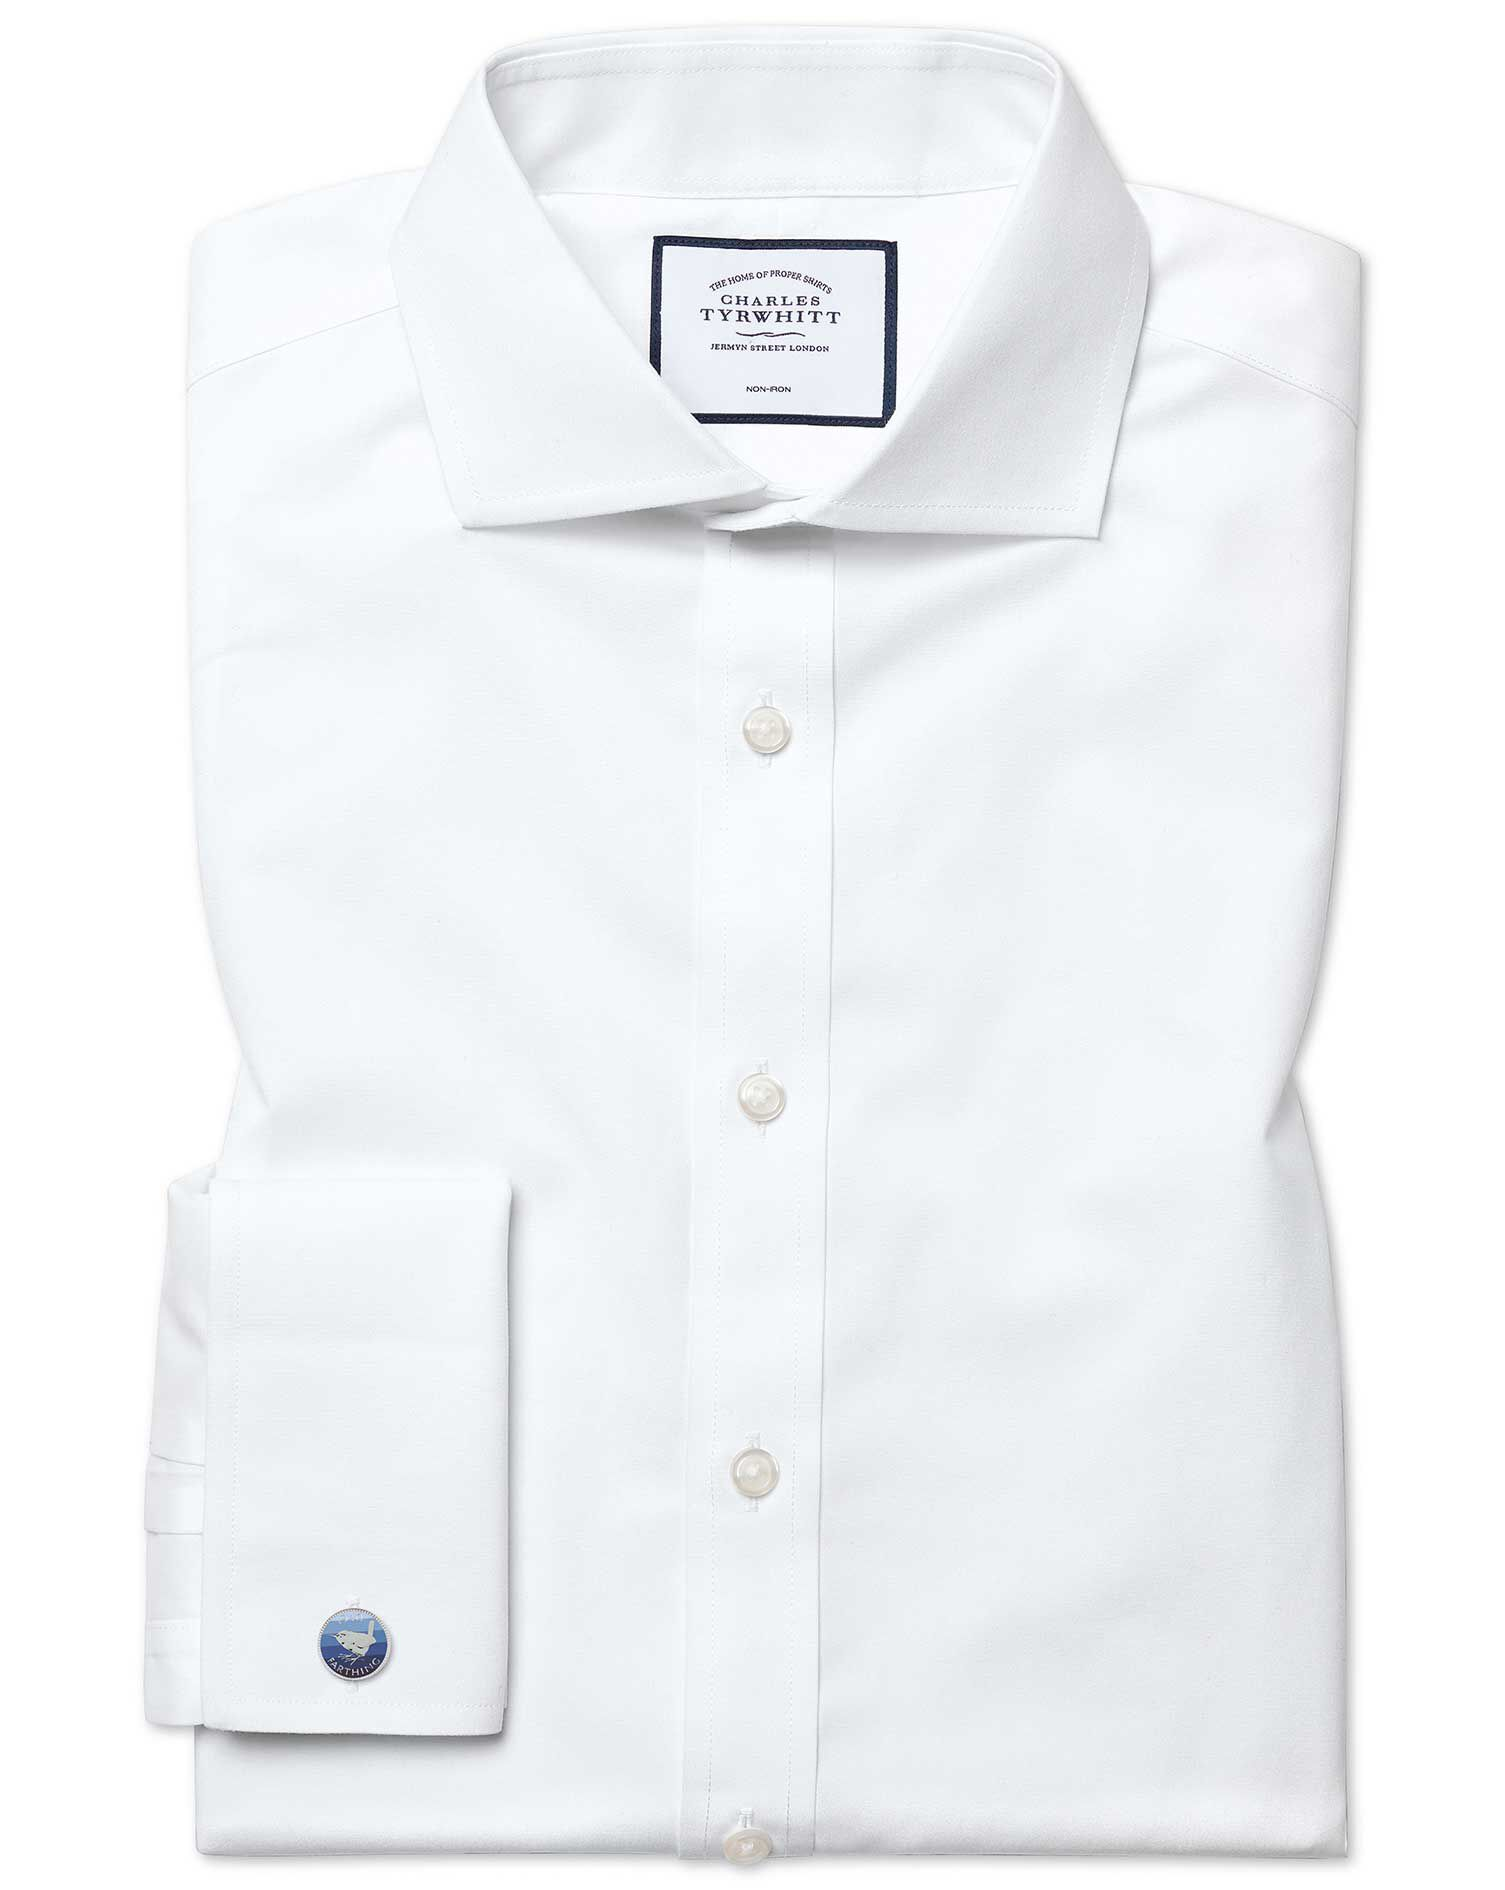 Classic Fit Cutaway Non-Iron Poplin White Cotton Formal Shirt Single Cuff Size 16.5/36 by Charles Ty